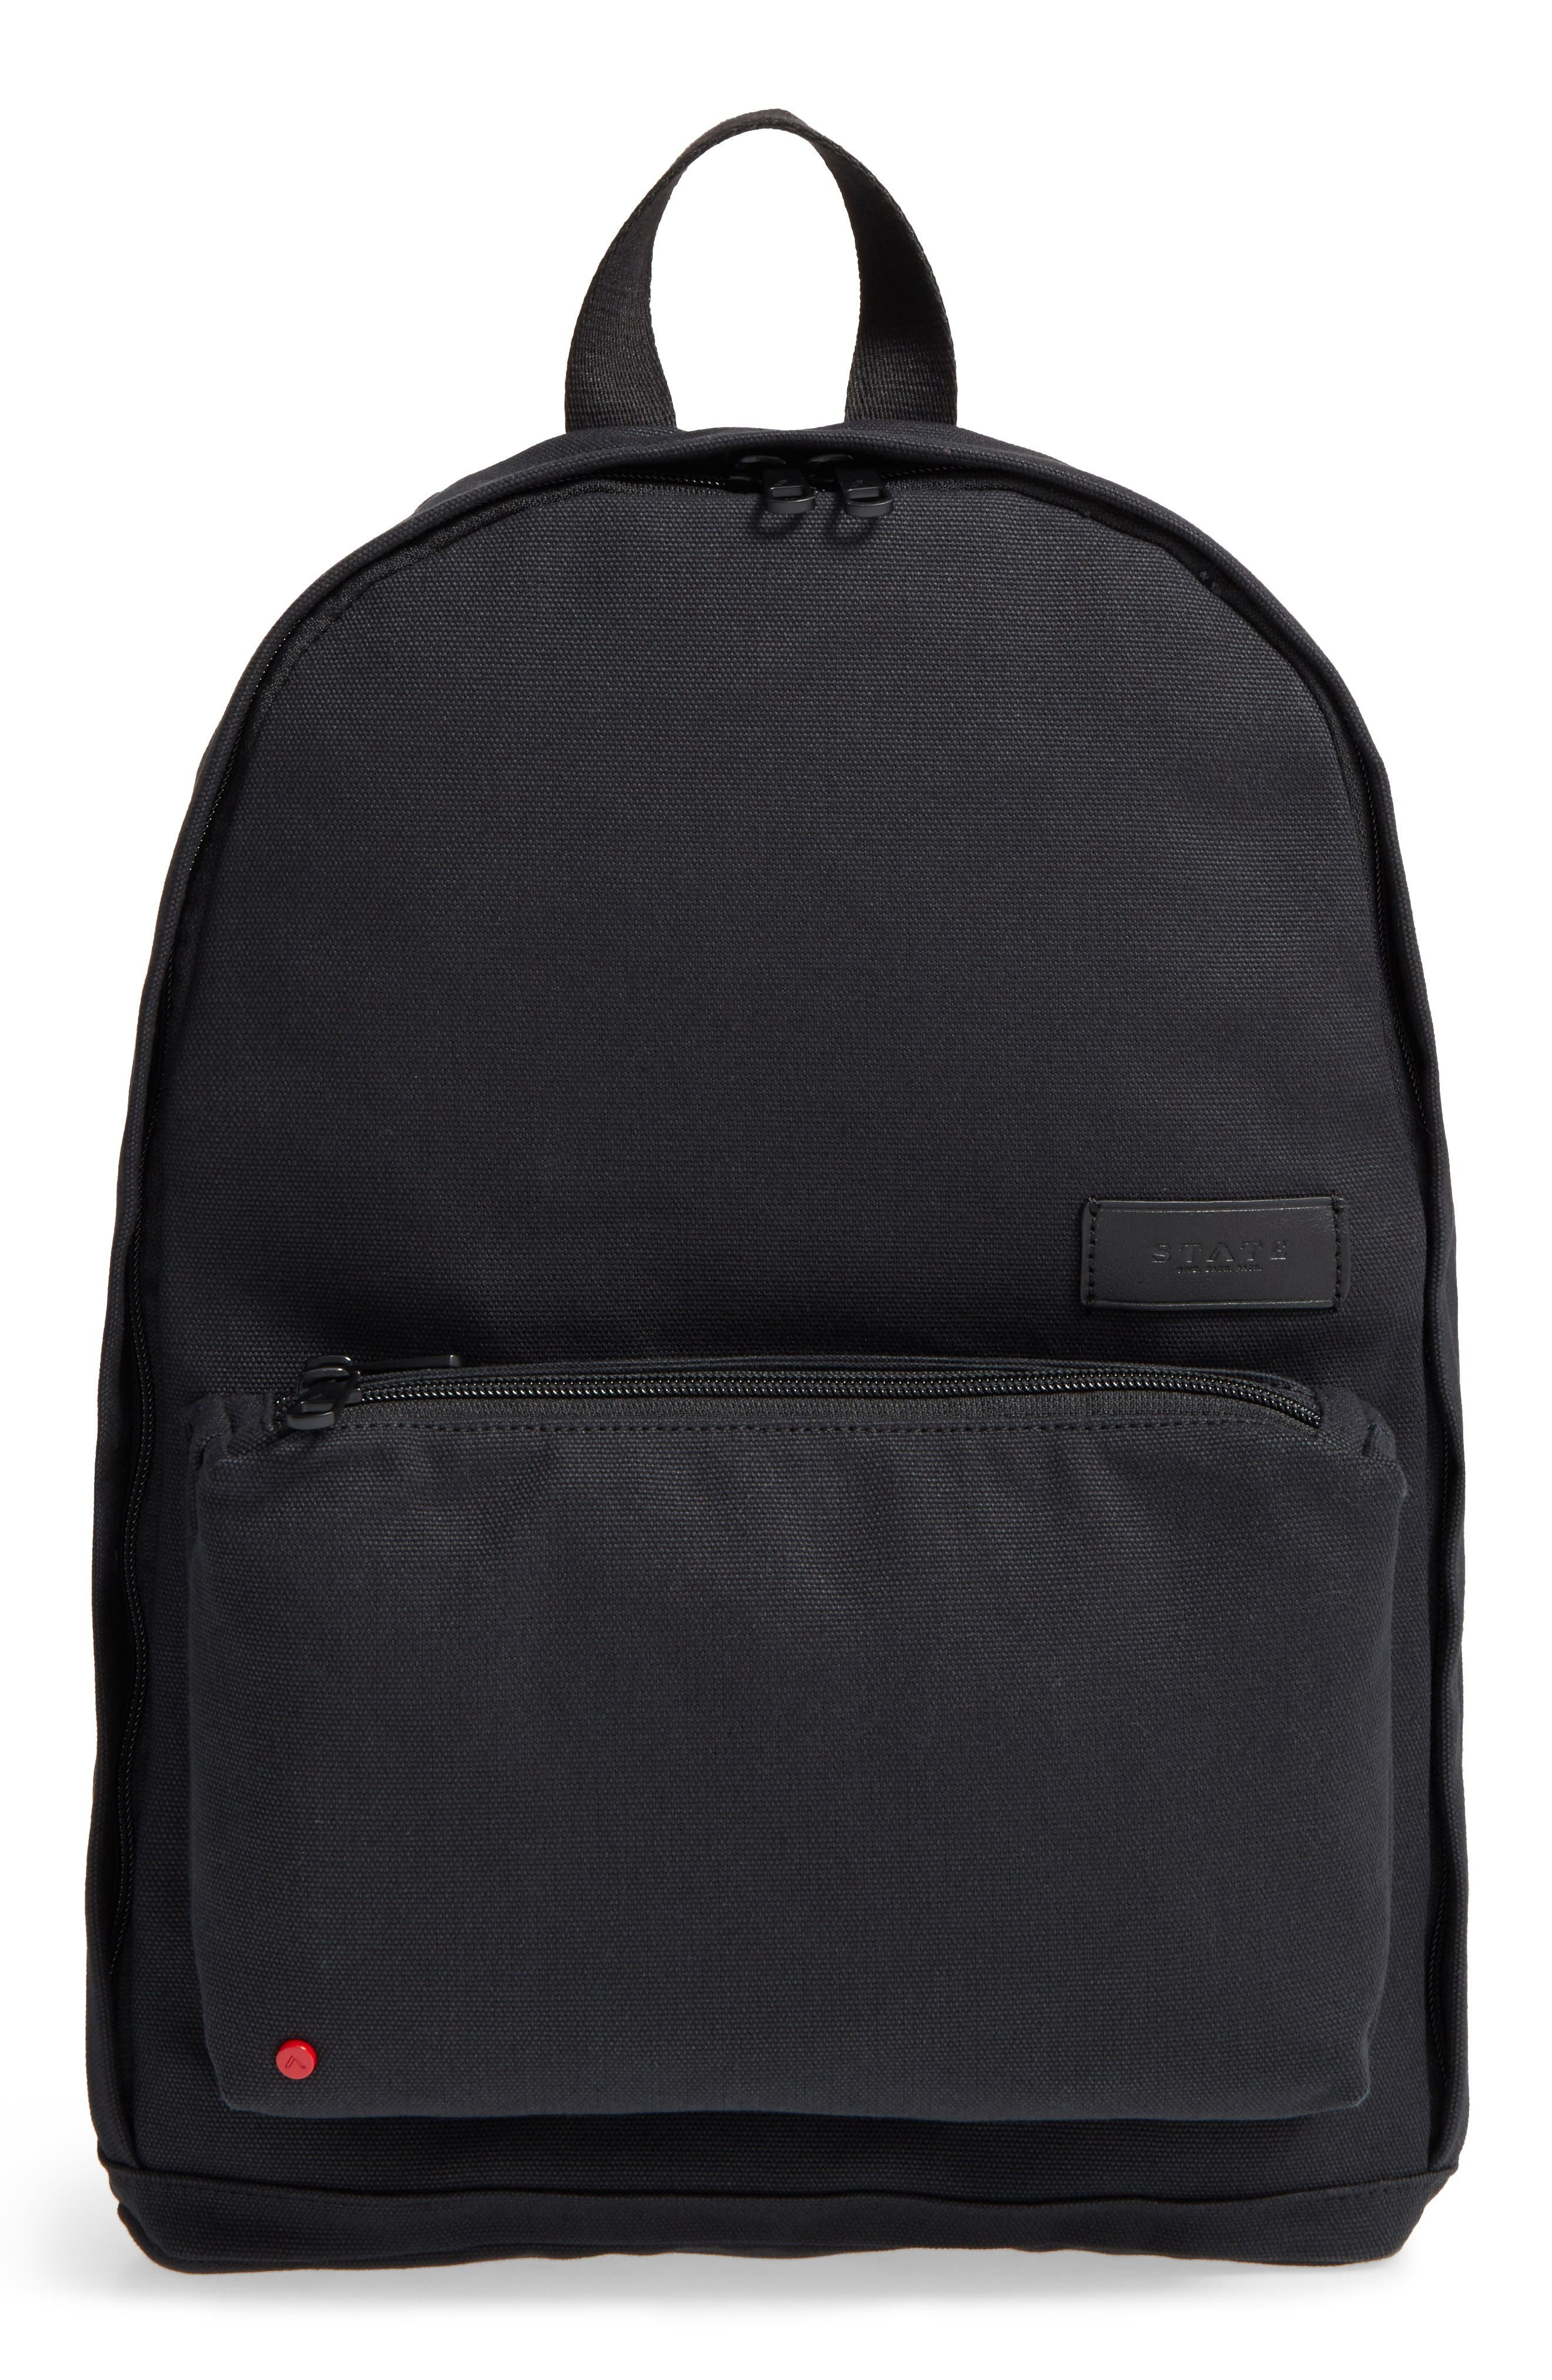 STATE Bags Canvas Slim Lorimer Backpack